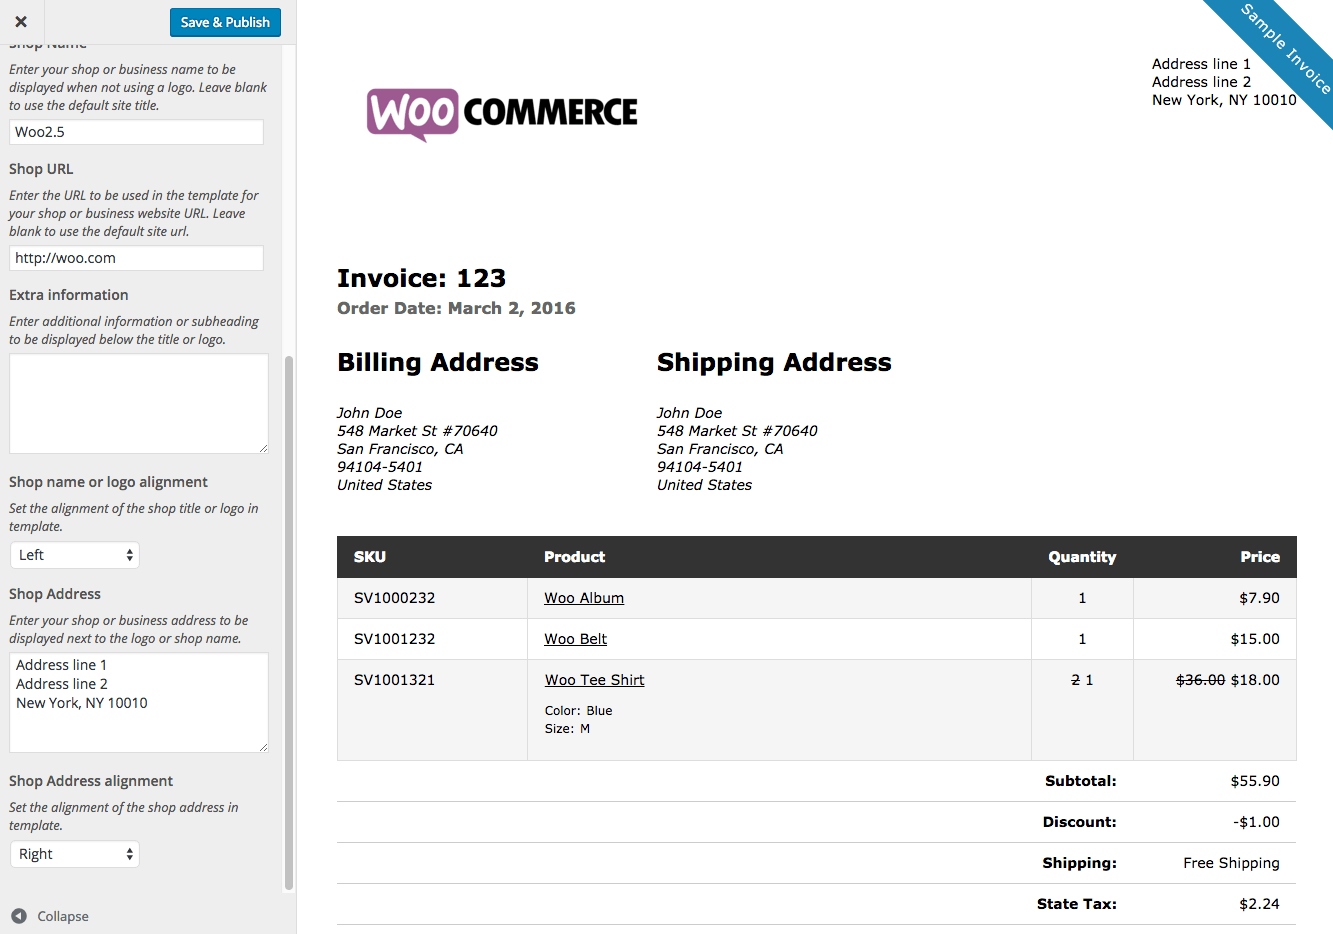 Hucareus  Pleasing Woocommerce Print Invoices Amp Packing Lists  Woocommerce Docs With Likable Woocommerce Print Invoices  Packing Lists Customizer With Endearing Google Invoices Templates Also Specimen Of Invoice In Addition Free Invoicing Software Australia And Service Invoices Templates Free As Well As Invoice Reconciliation Process Additionally Matching Invoices From Docswoocommercecom With Hucareus  Likable Woocommerce Print Invoices Amp Packing Lists  Woocommerce Docs With Endearing Woocommerce Print Invoices  Packing Lists Customizer And Pleasing Google Invoices Templates Also Specimen Of Invoice In Addition Free Invoicing Software Australia From Docswoocommercecom